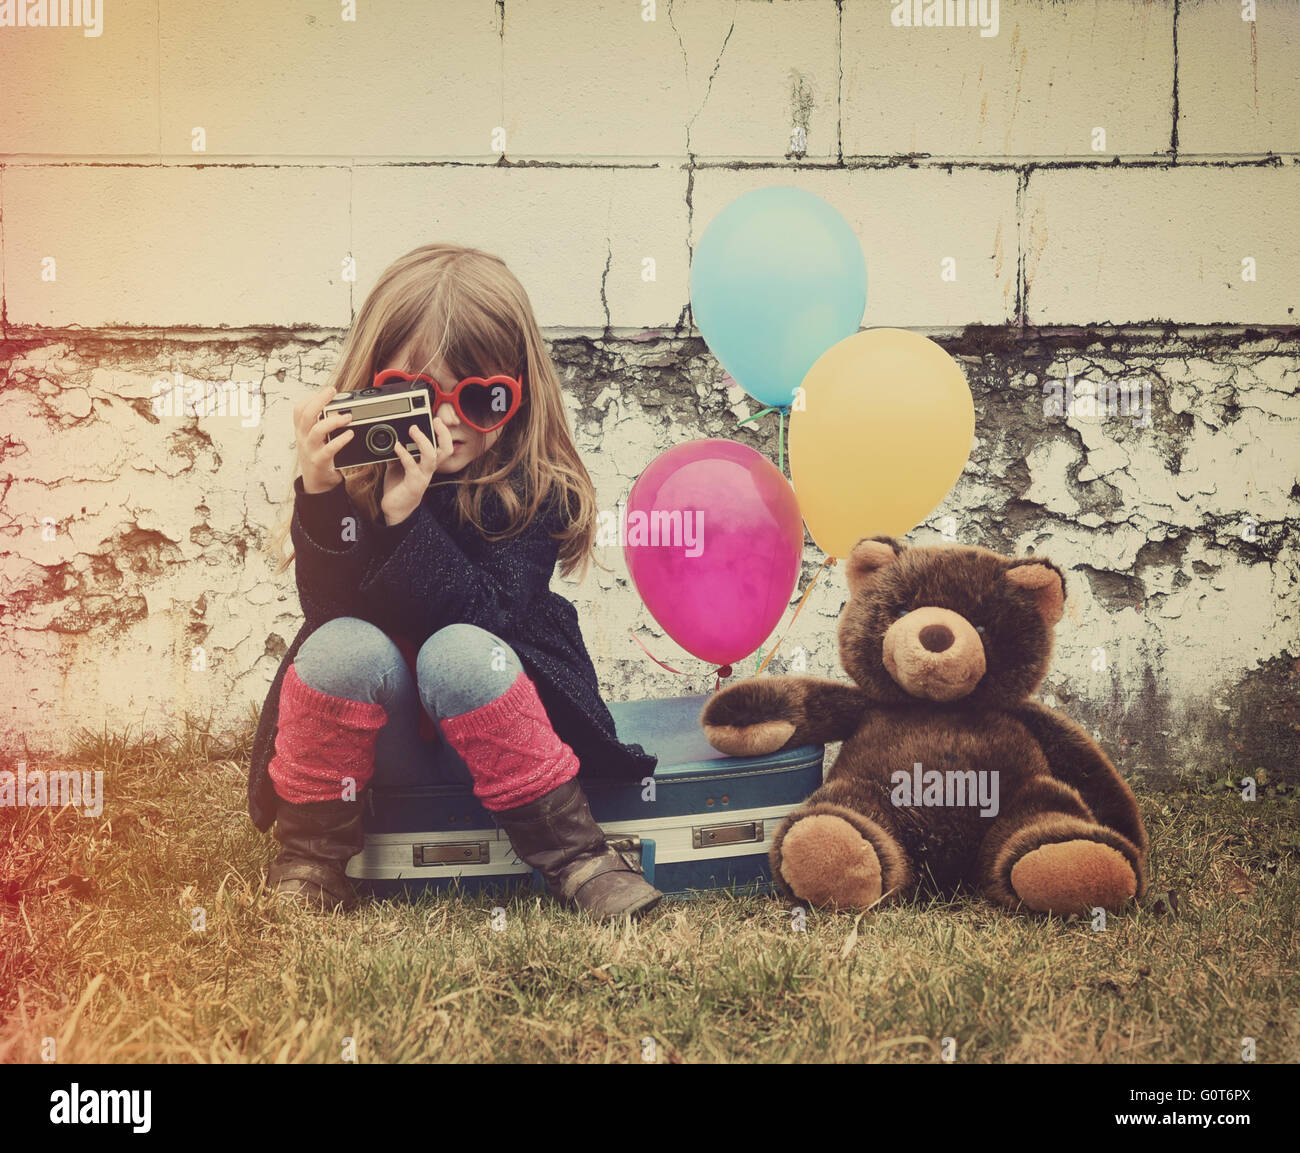 A photo of a vintage child taking a picture with old camera against a brick wall, balloons and a teddy bear for - Stock Image